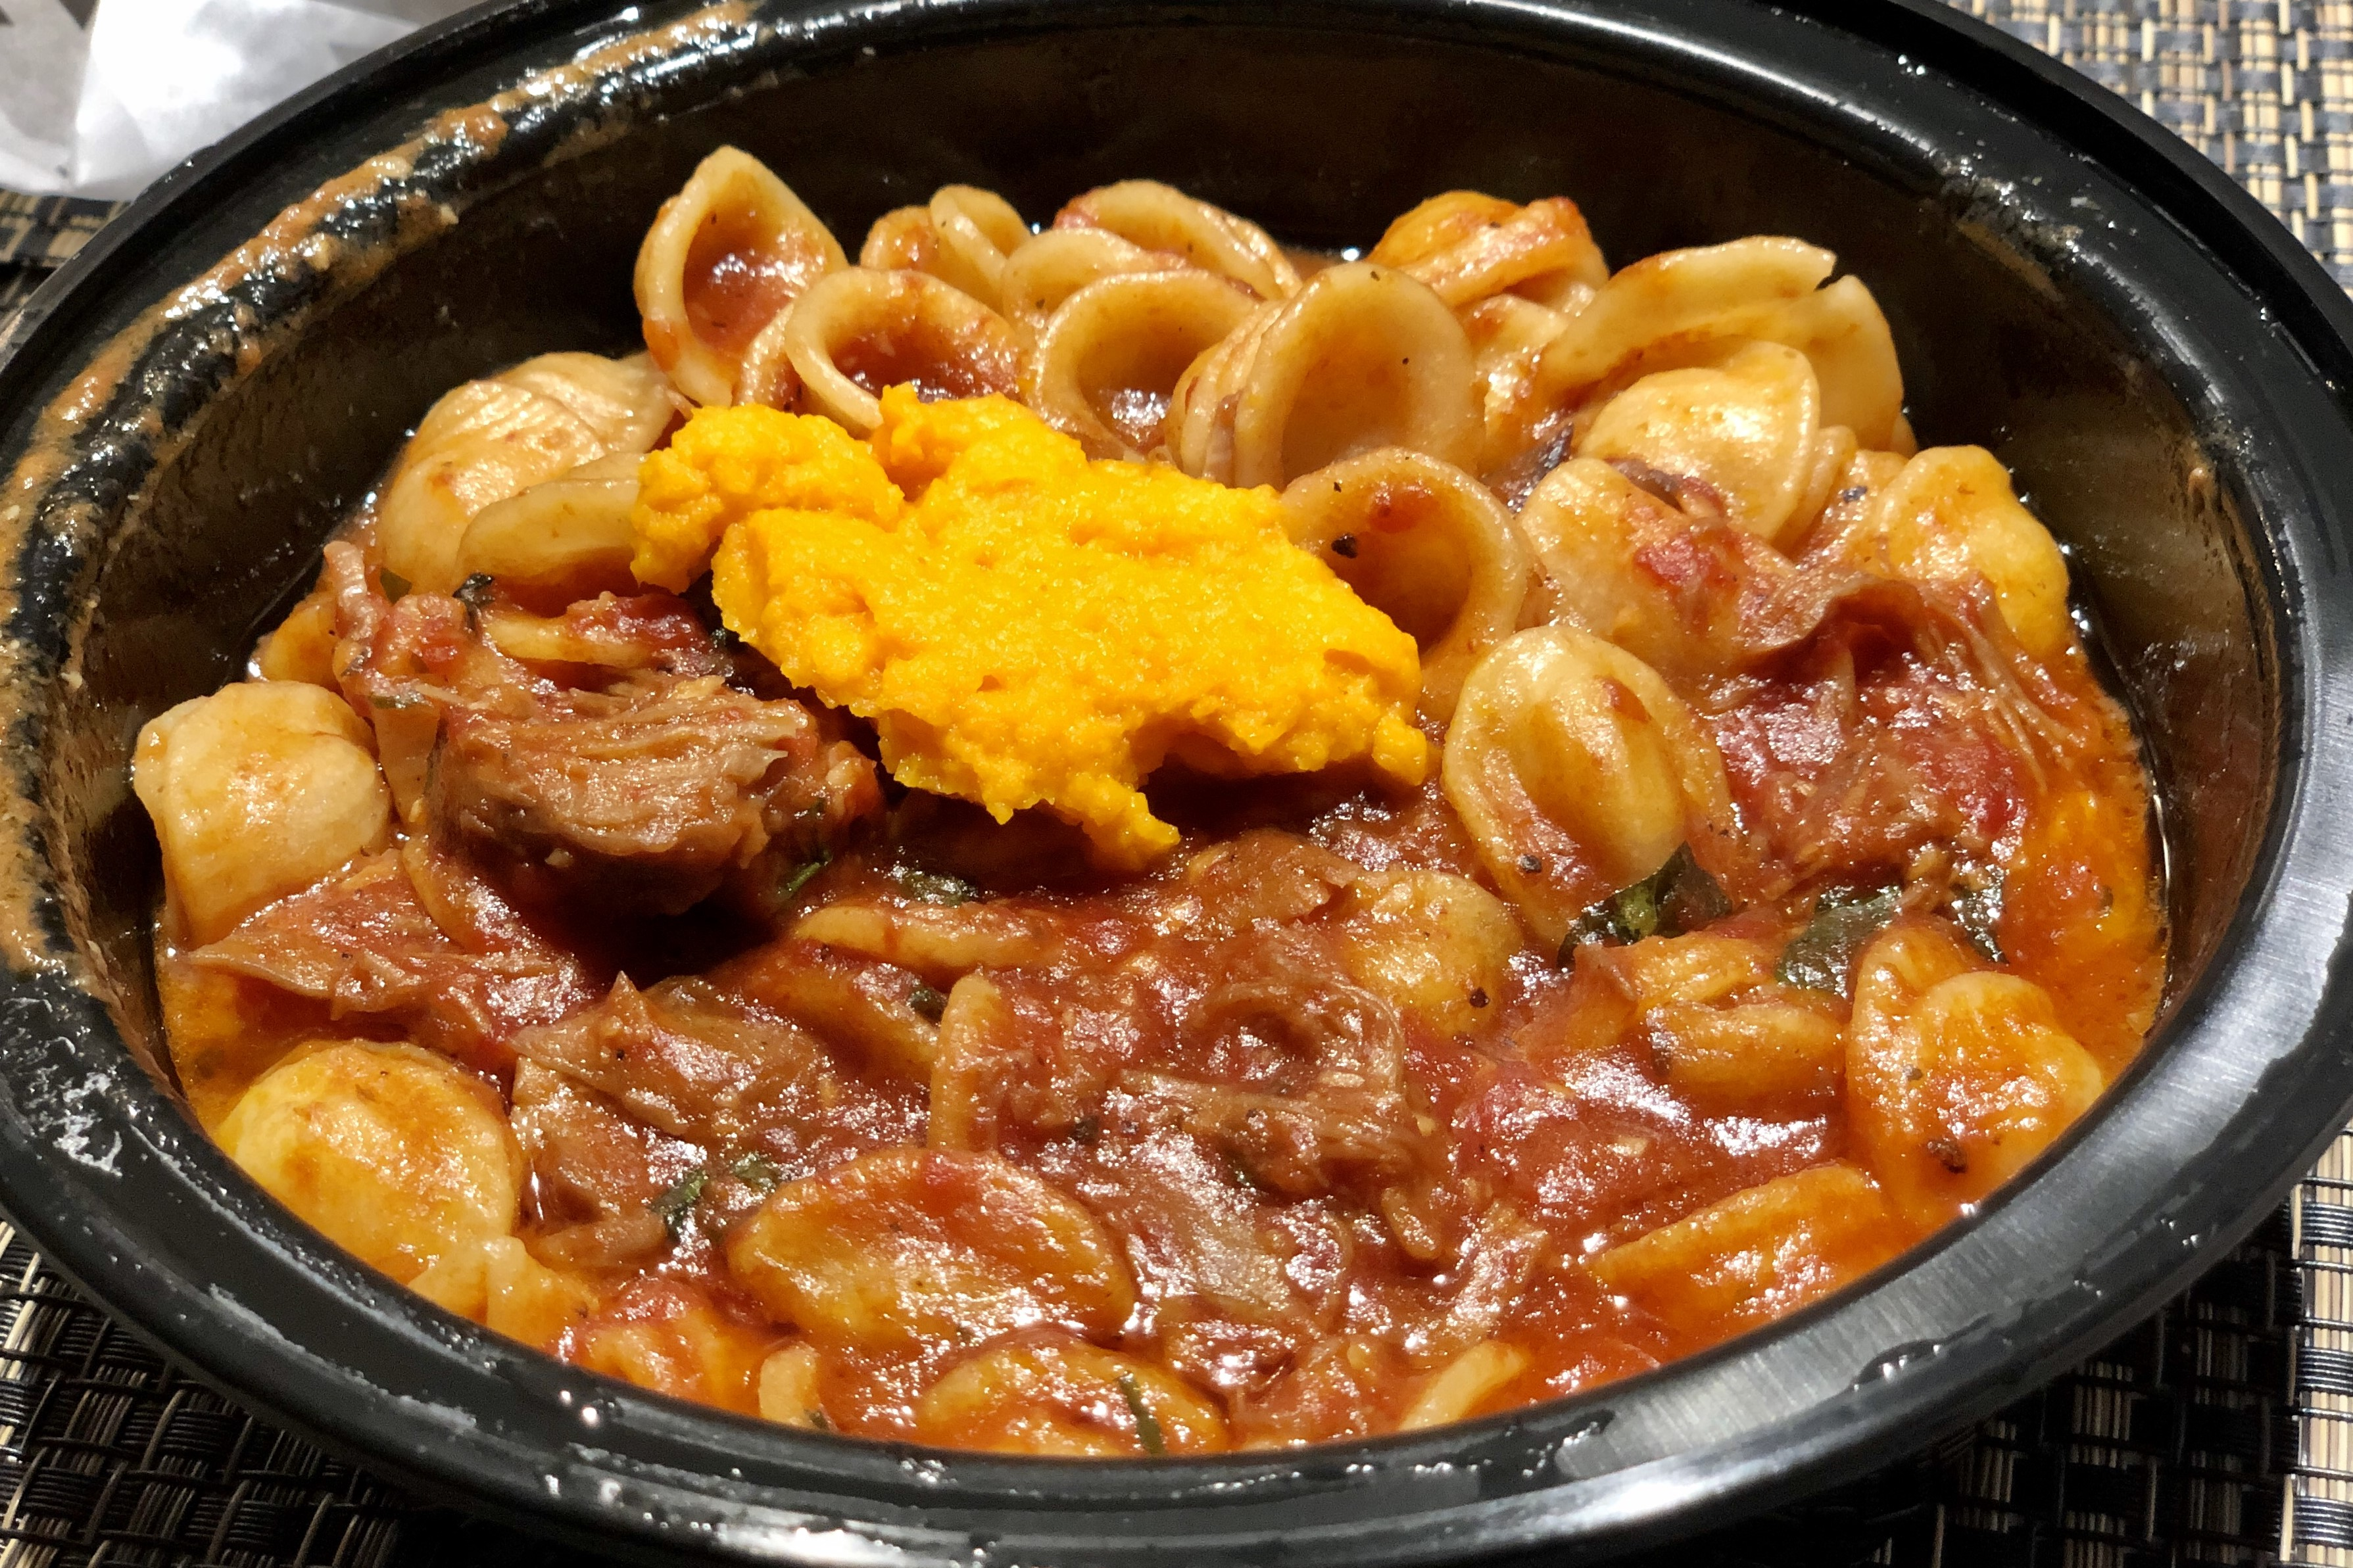 Orecchiette thumbnail (click to enlarge)